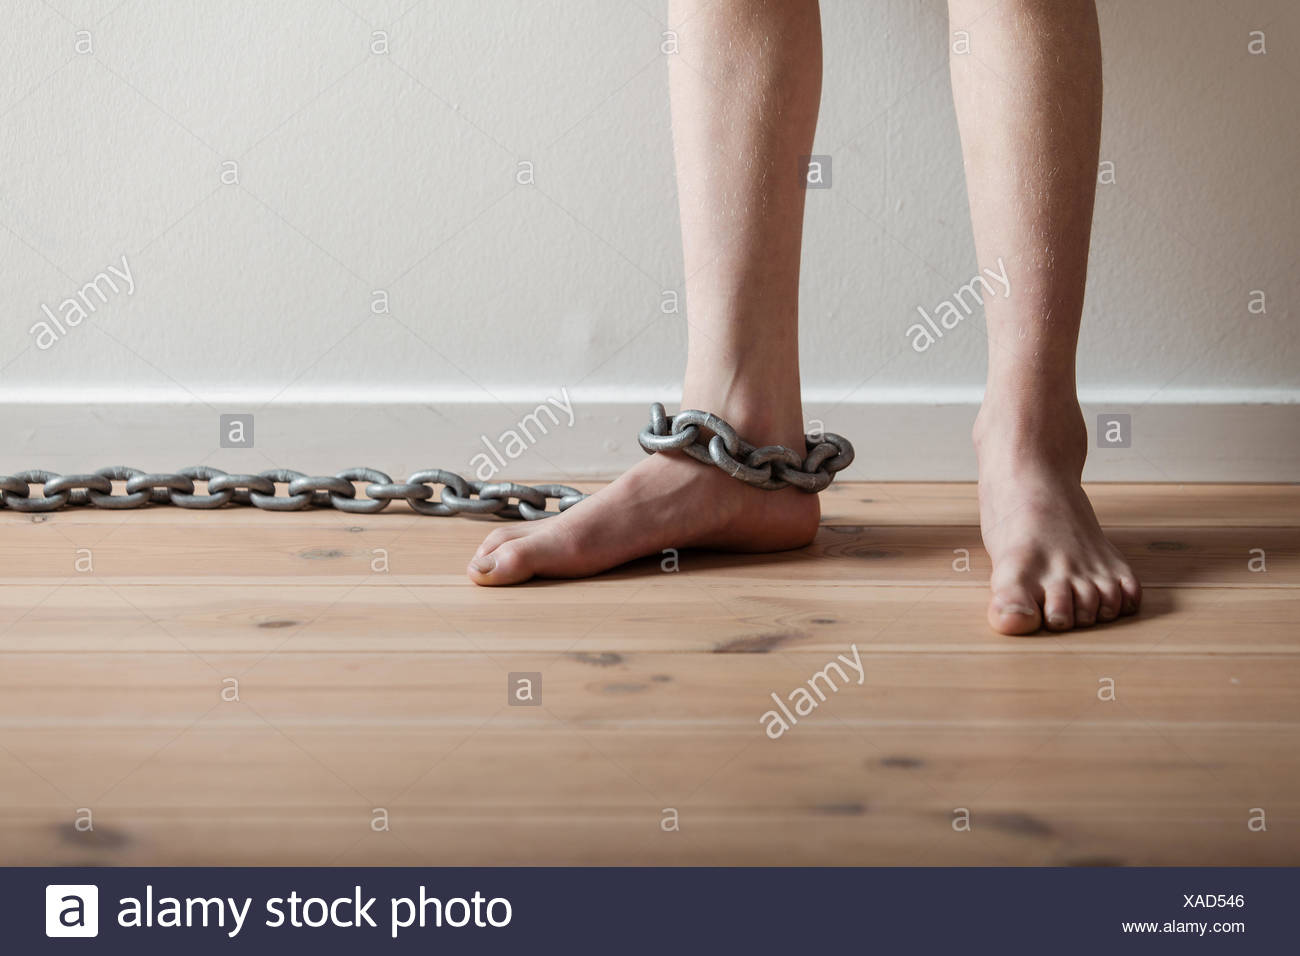 Conceptual Feet of a Boy with Chain Inside a Room - Stock Image